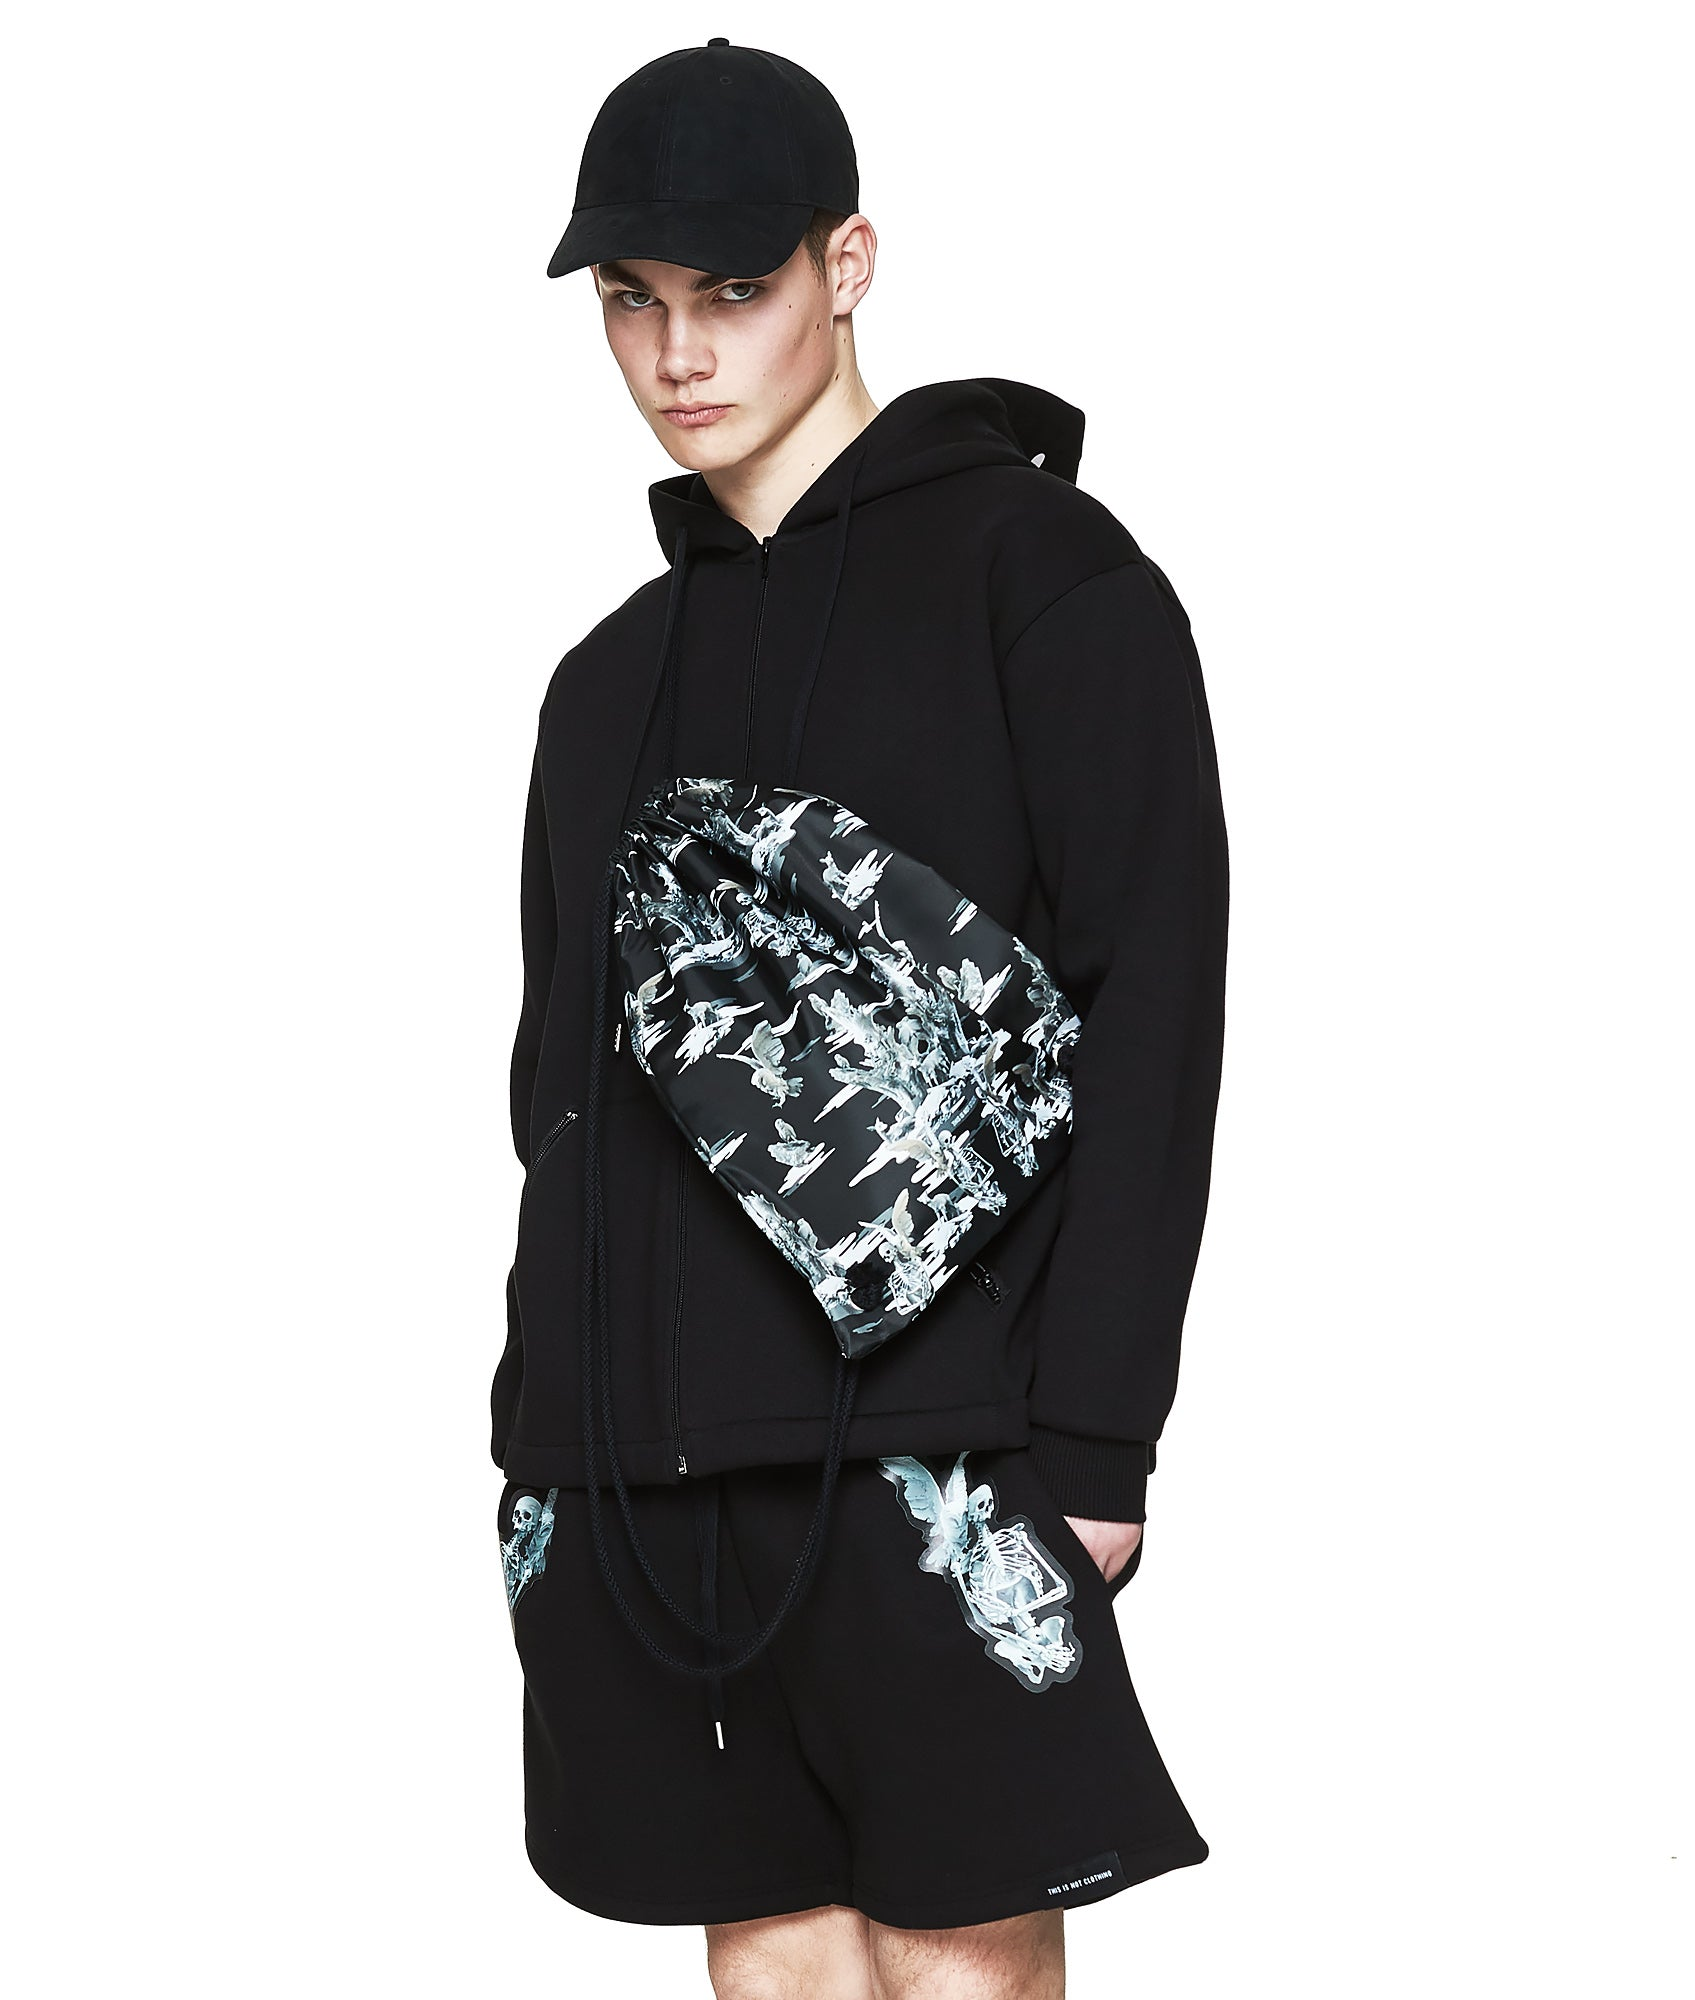 Fall of Paradise Hoodie - Designer Brand - This Is Not Clothing - Lookbook Photo 4